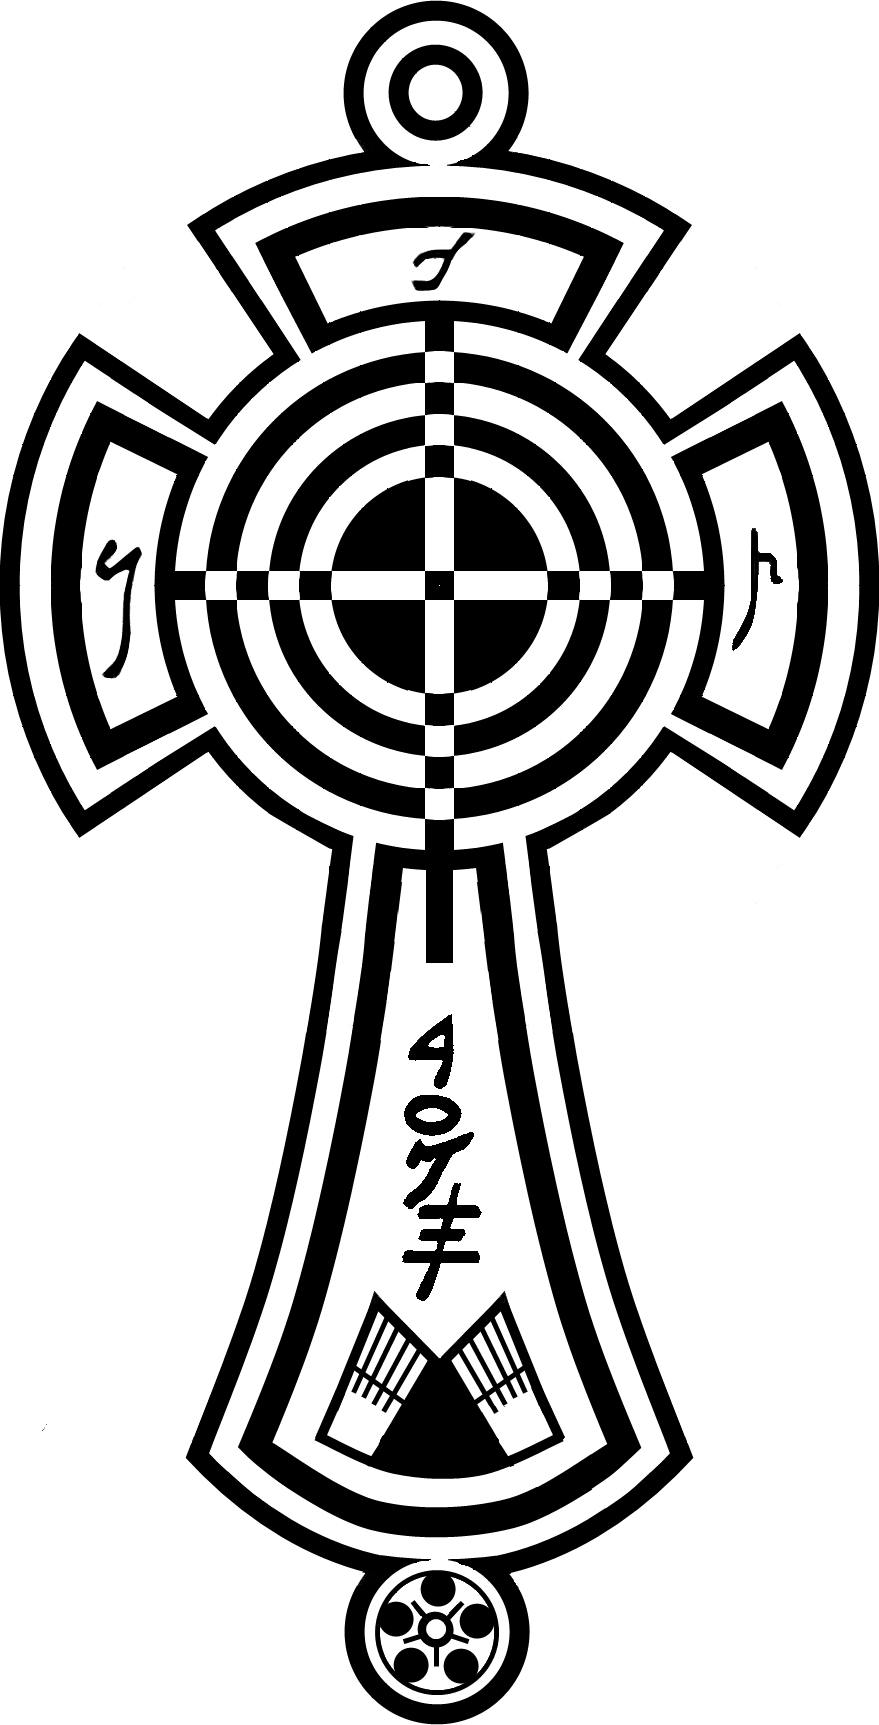 sign of the cross coloring page - sign of the cross prayer coloring pages